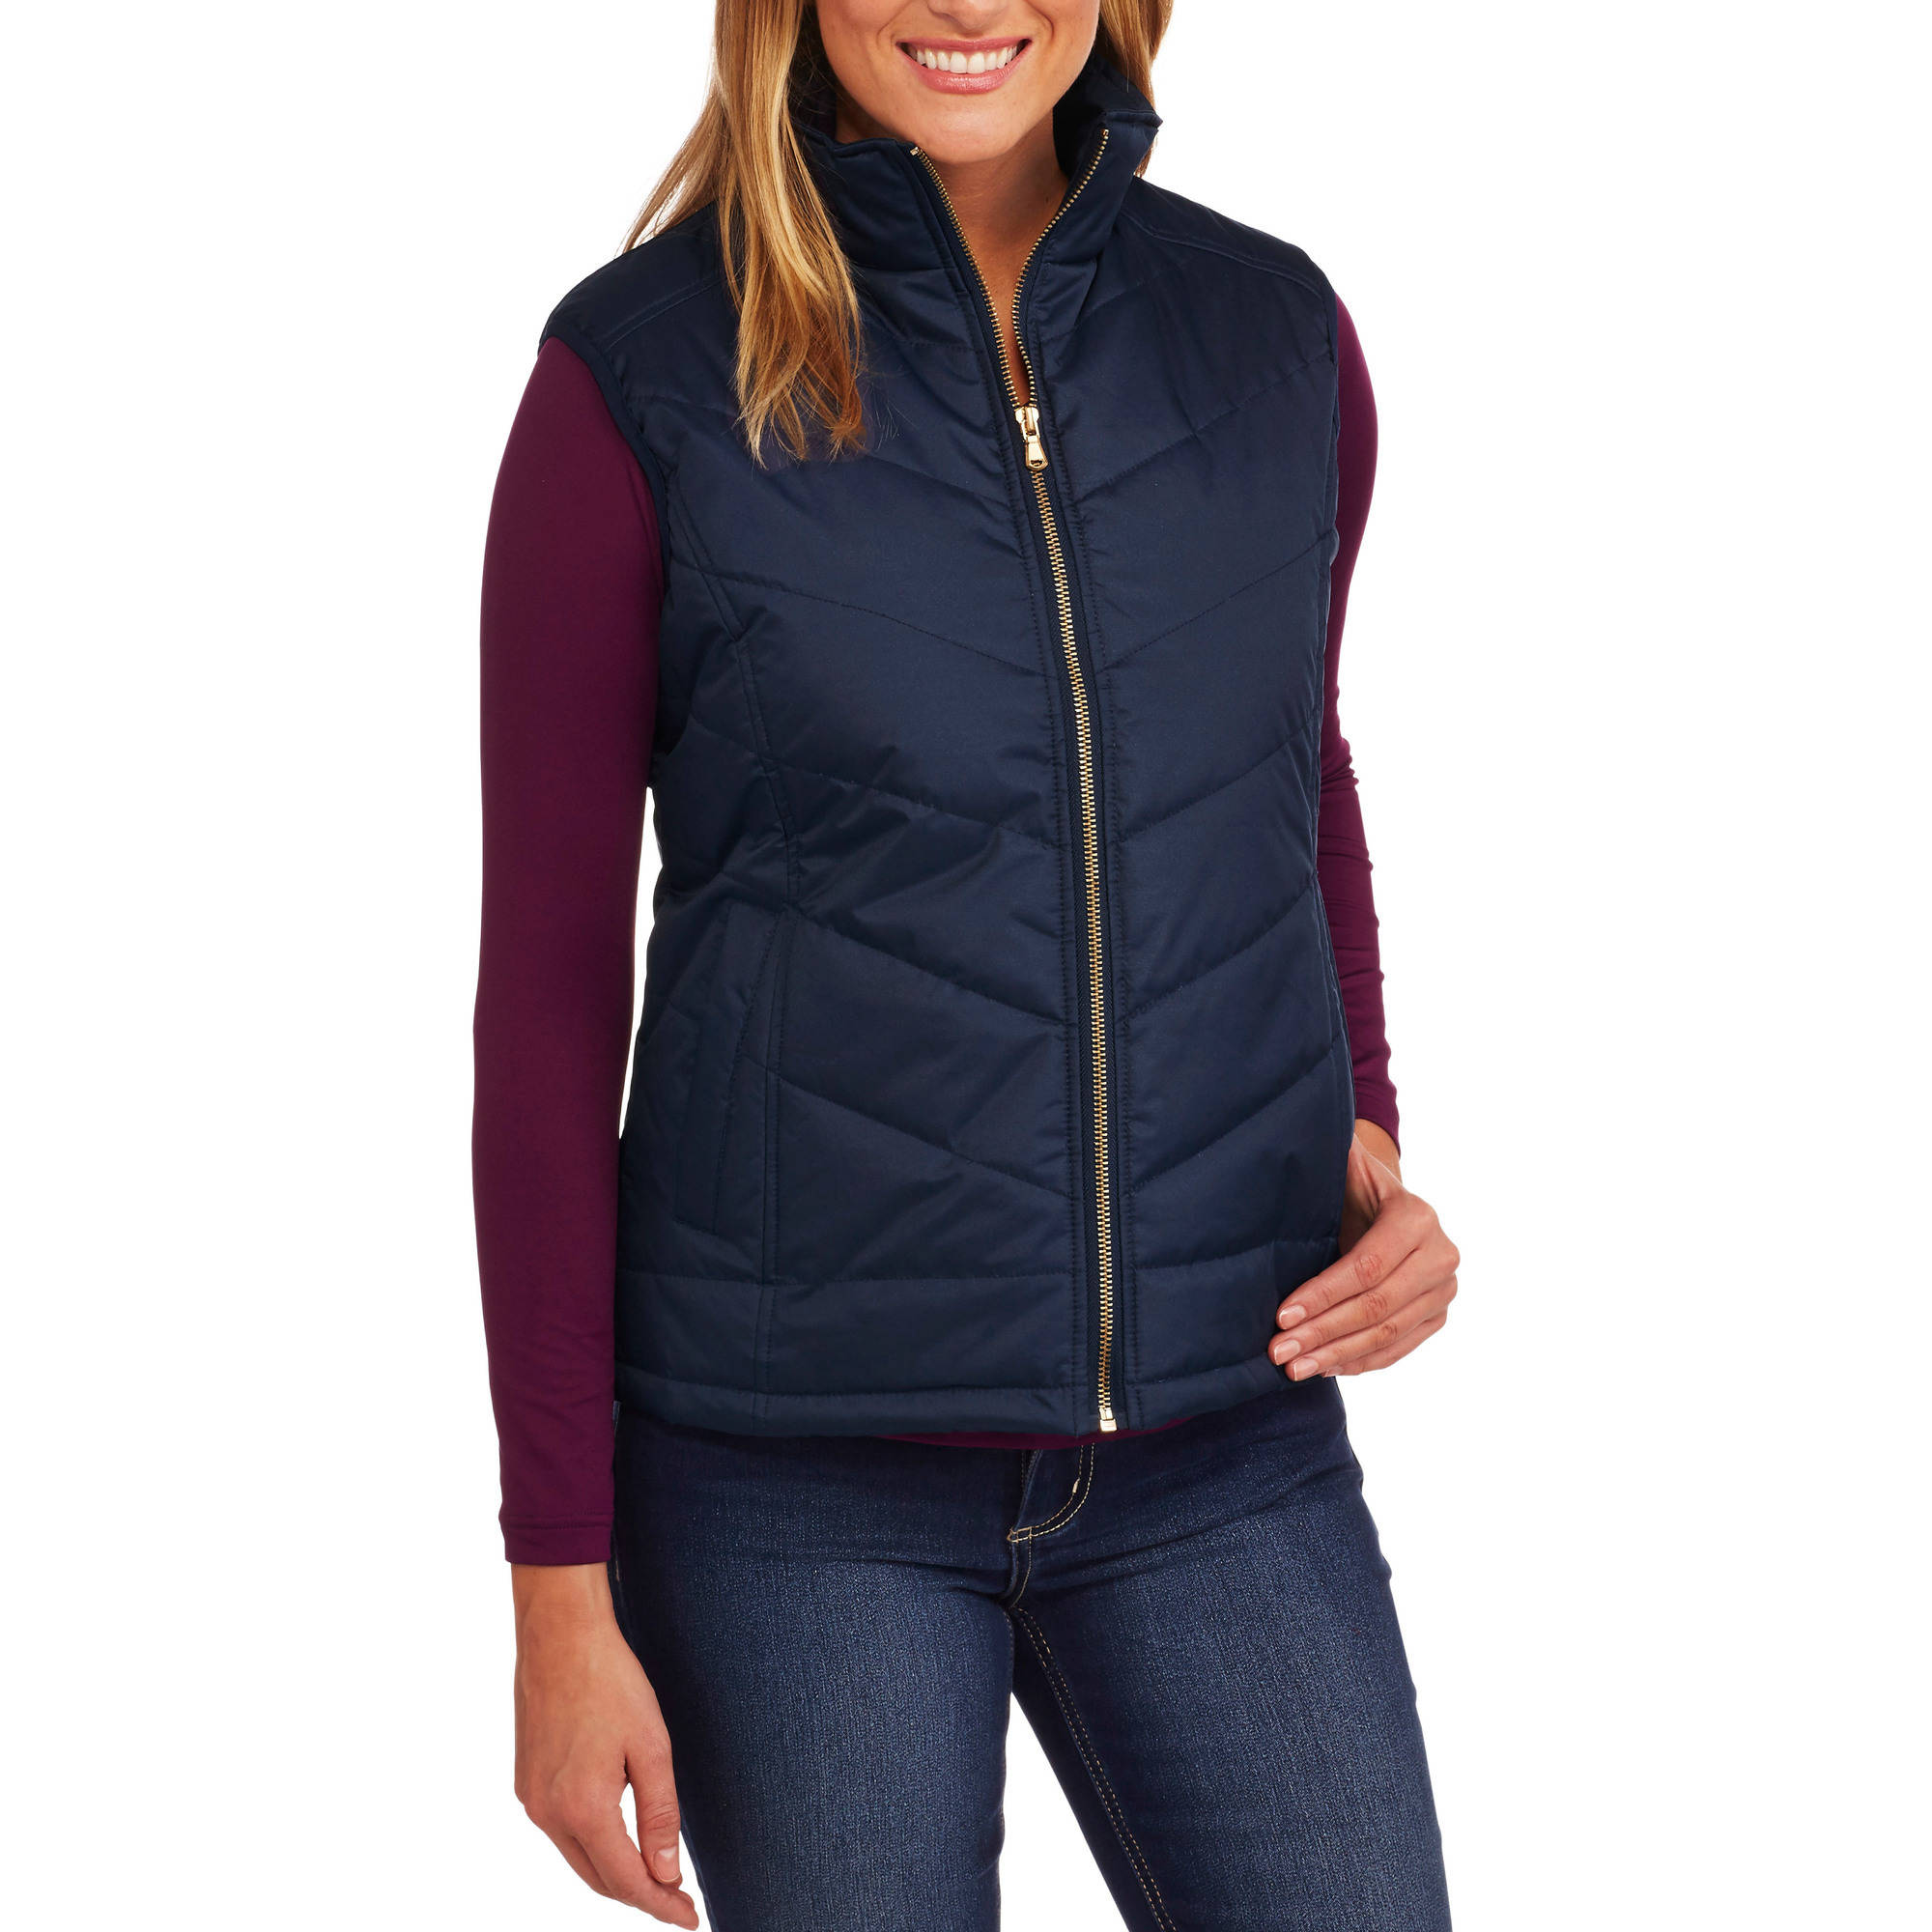 Climate Concepts Women's Quilted Puffer Vest With Gold Zipper